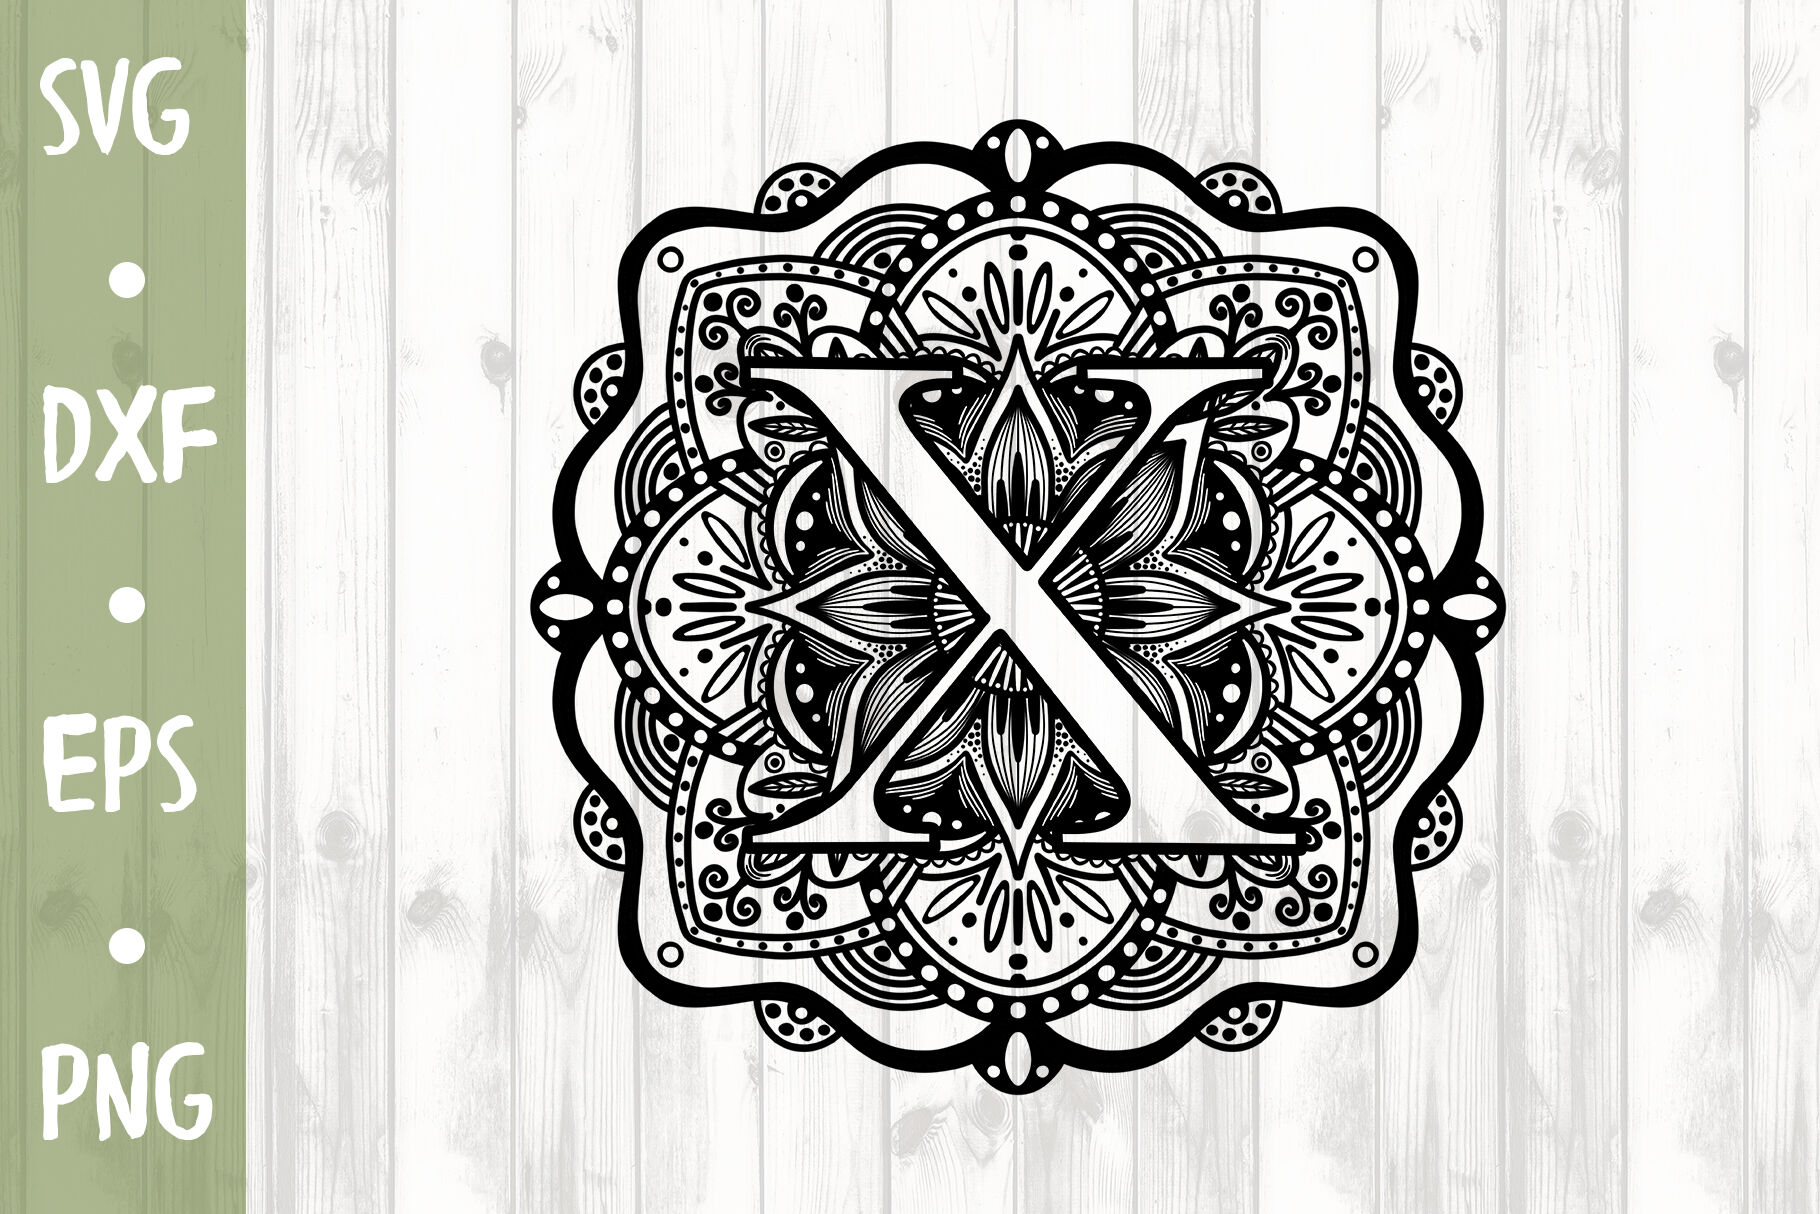 Letter X Svg Cut File By Milkimil Thehungryjpeg Com